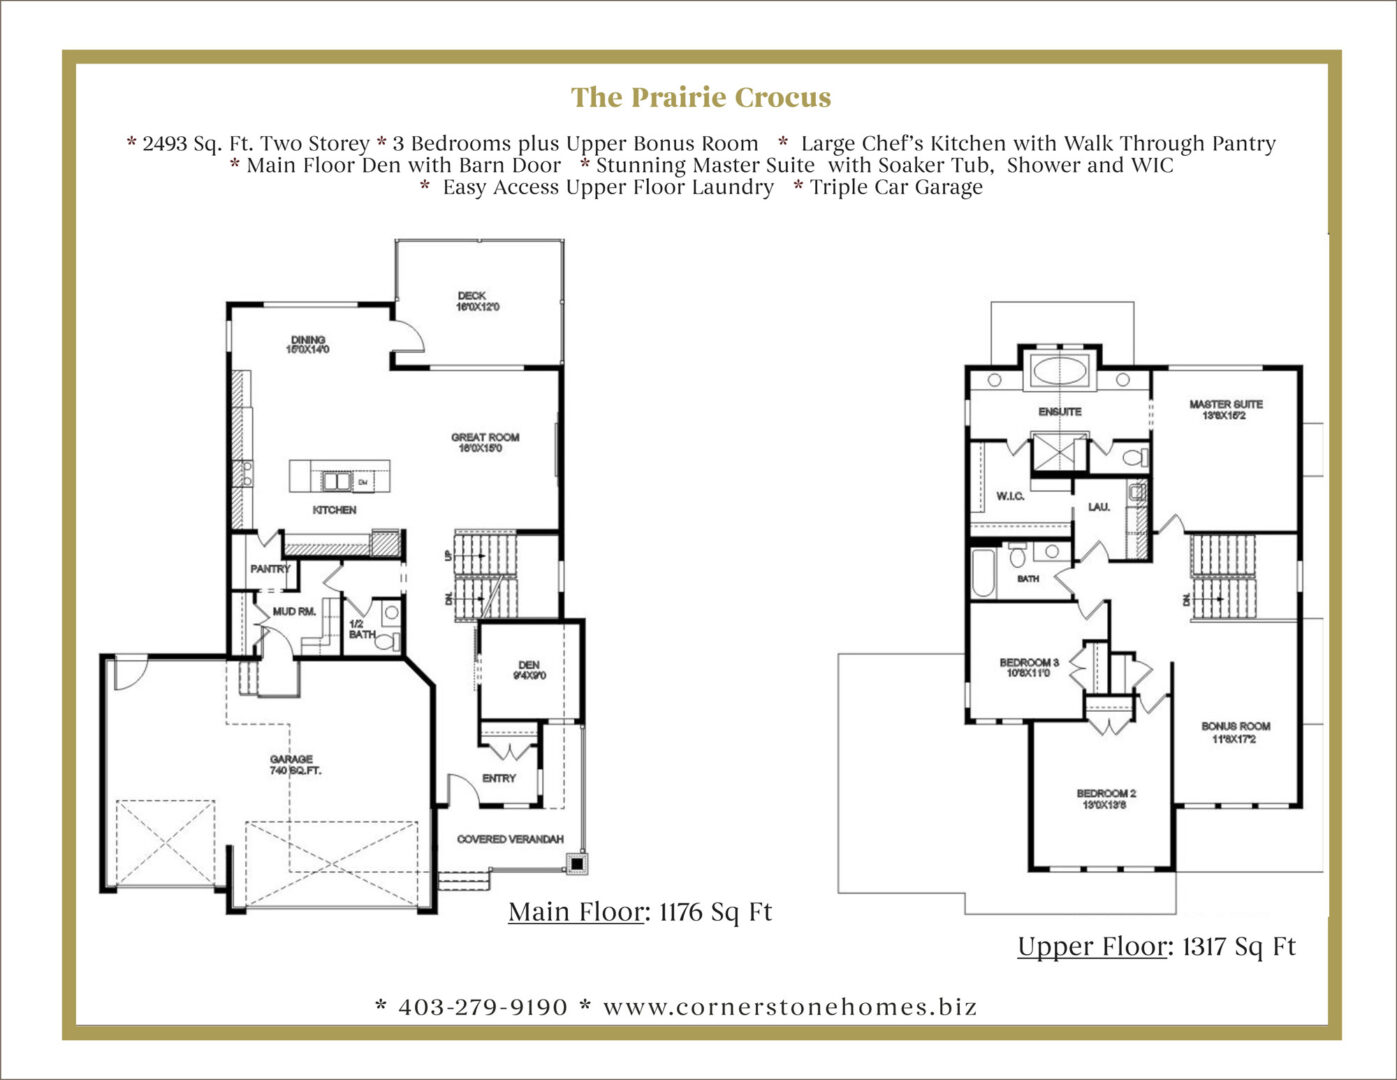 NEW-PRAIRIE-CROCUS-FLOOR-PLANS